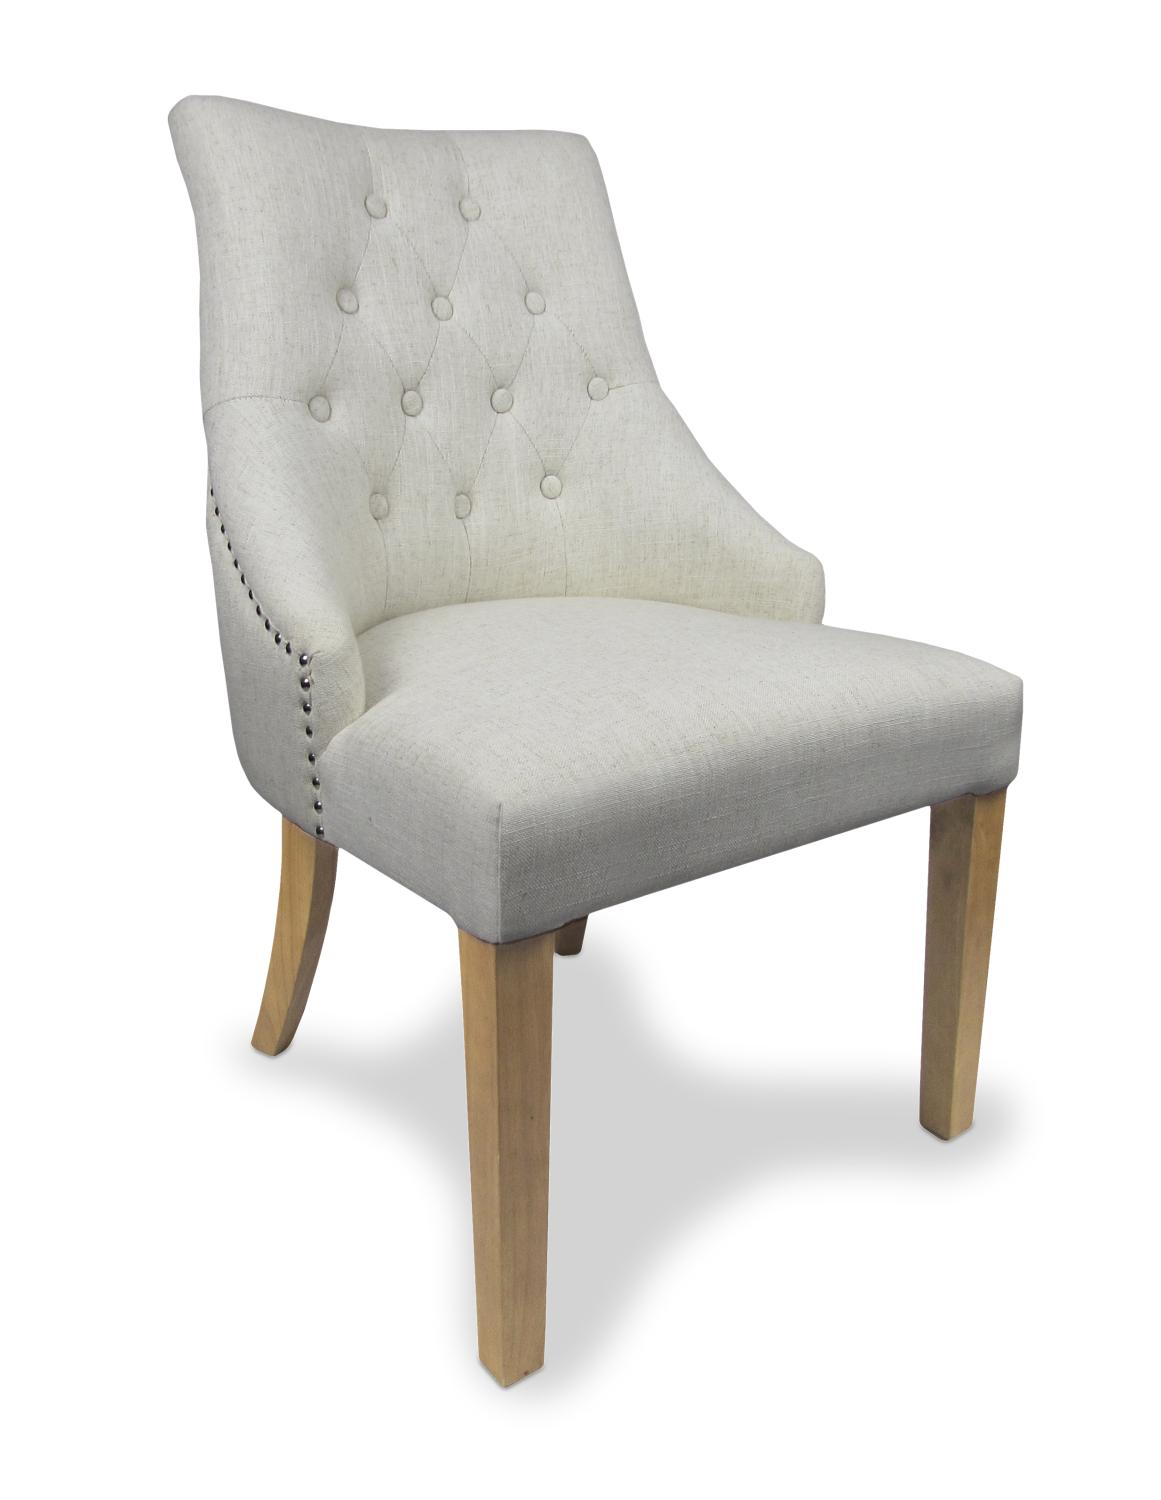 Home / Chairs / Chatsworth Natural Linen Style Upholstered Chair Set Of 2